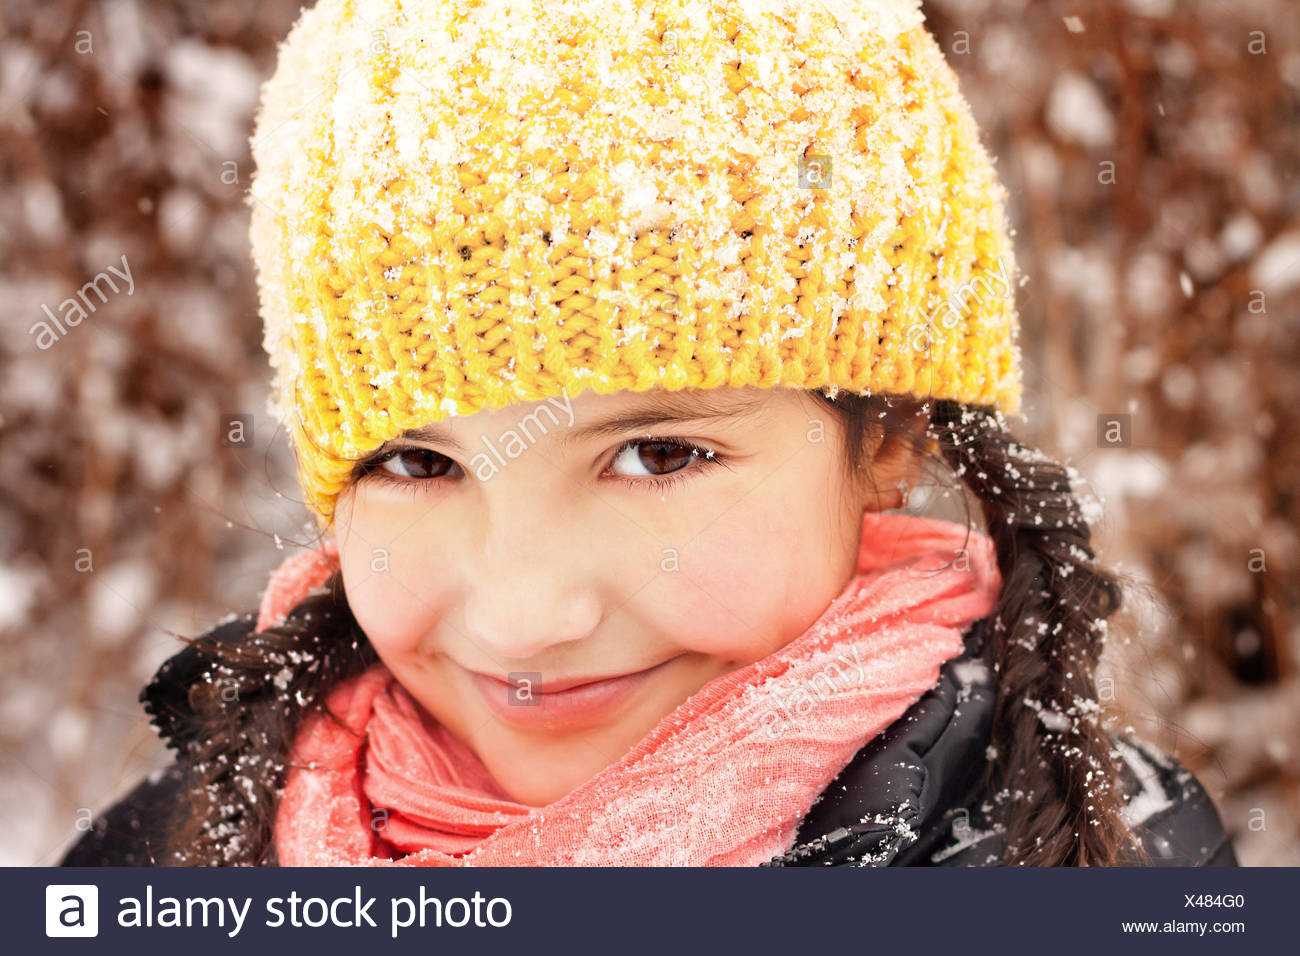 Pretty little girl (6-7) in braids and hat, smiling during snow fall - Stock Image